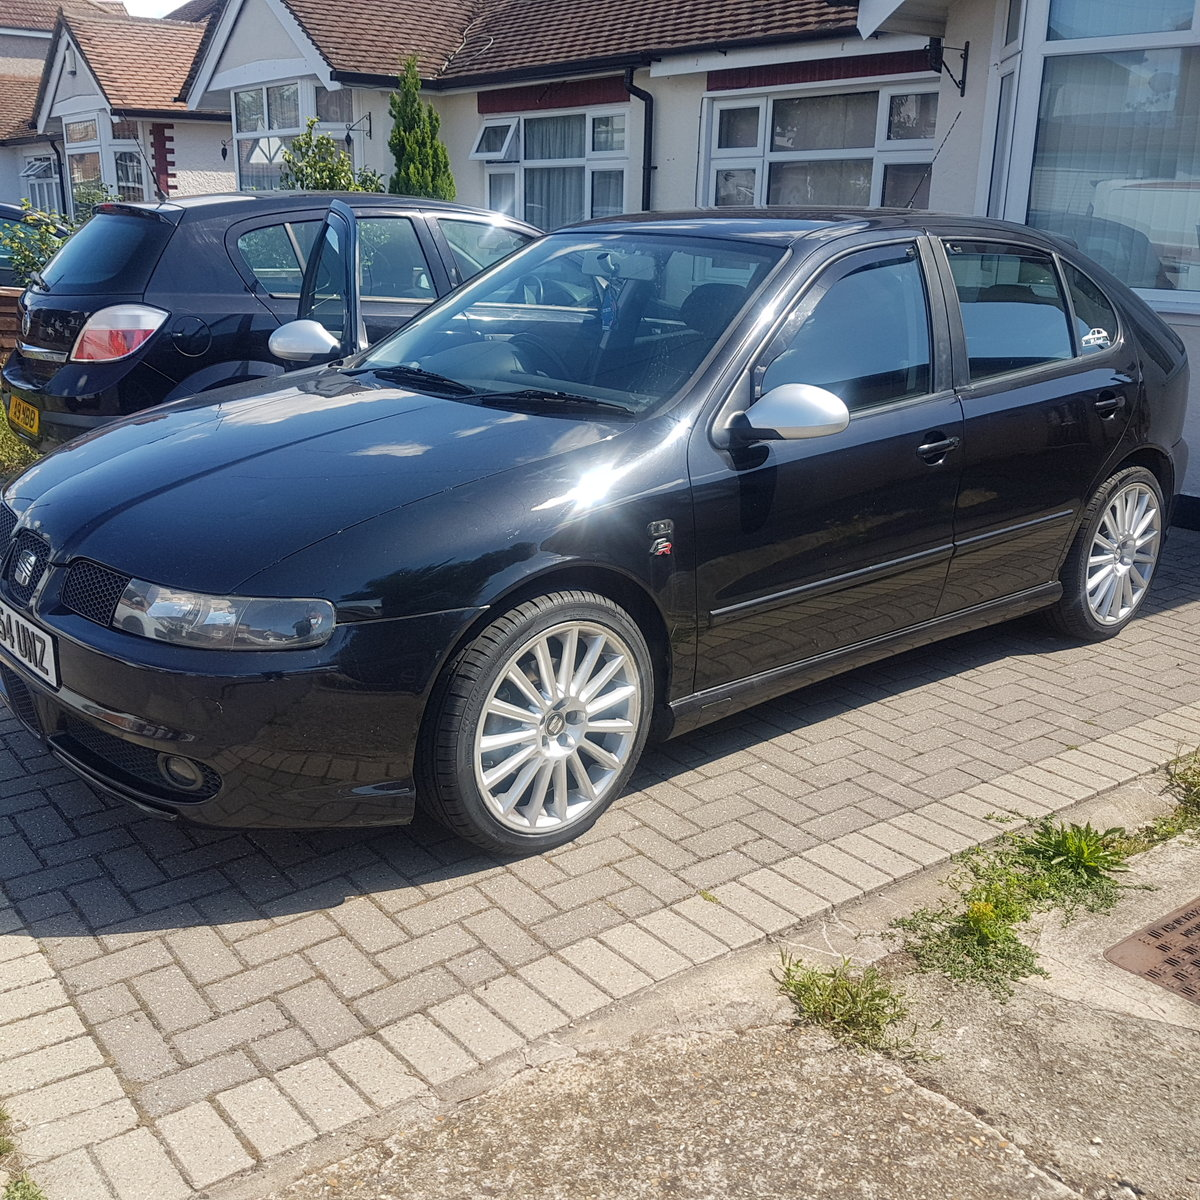 2004 Seat Leon FR diesel 2.0tdi SOLD (picture 1 of 5)